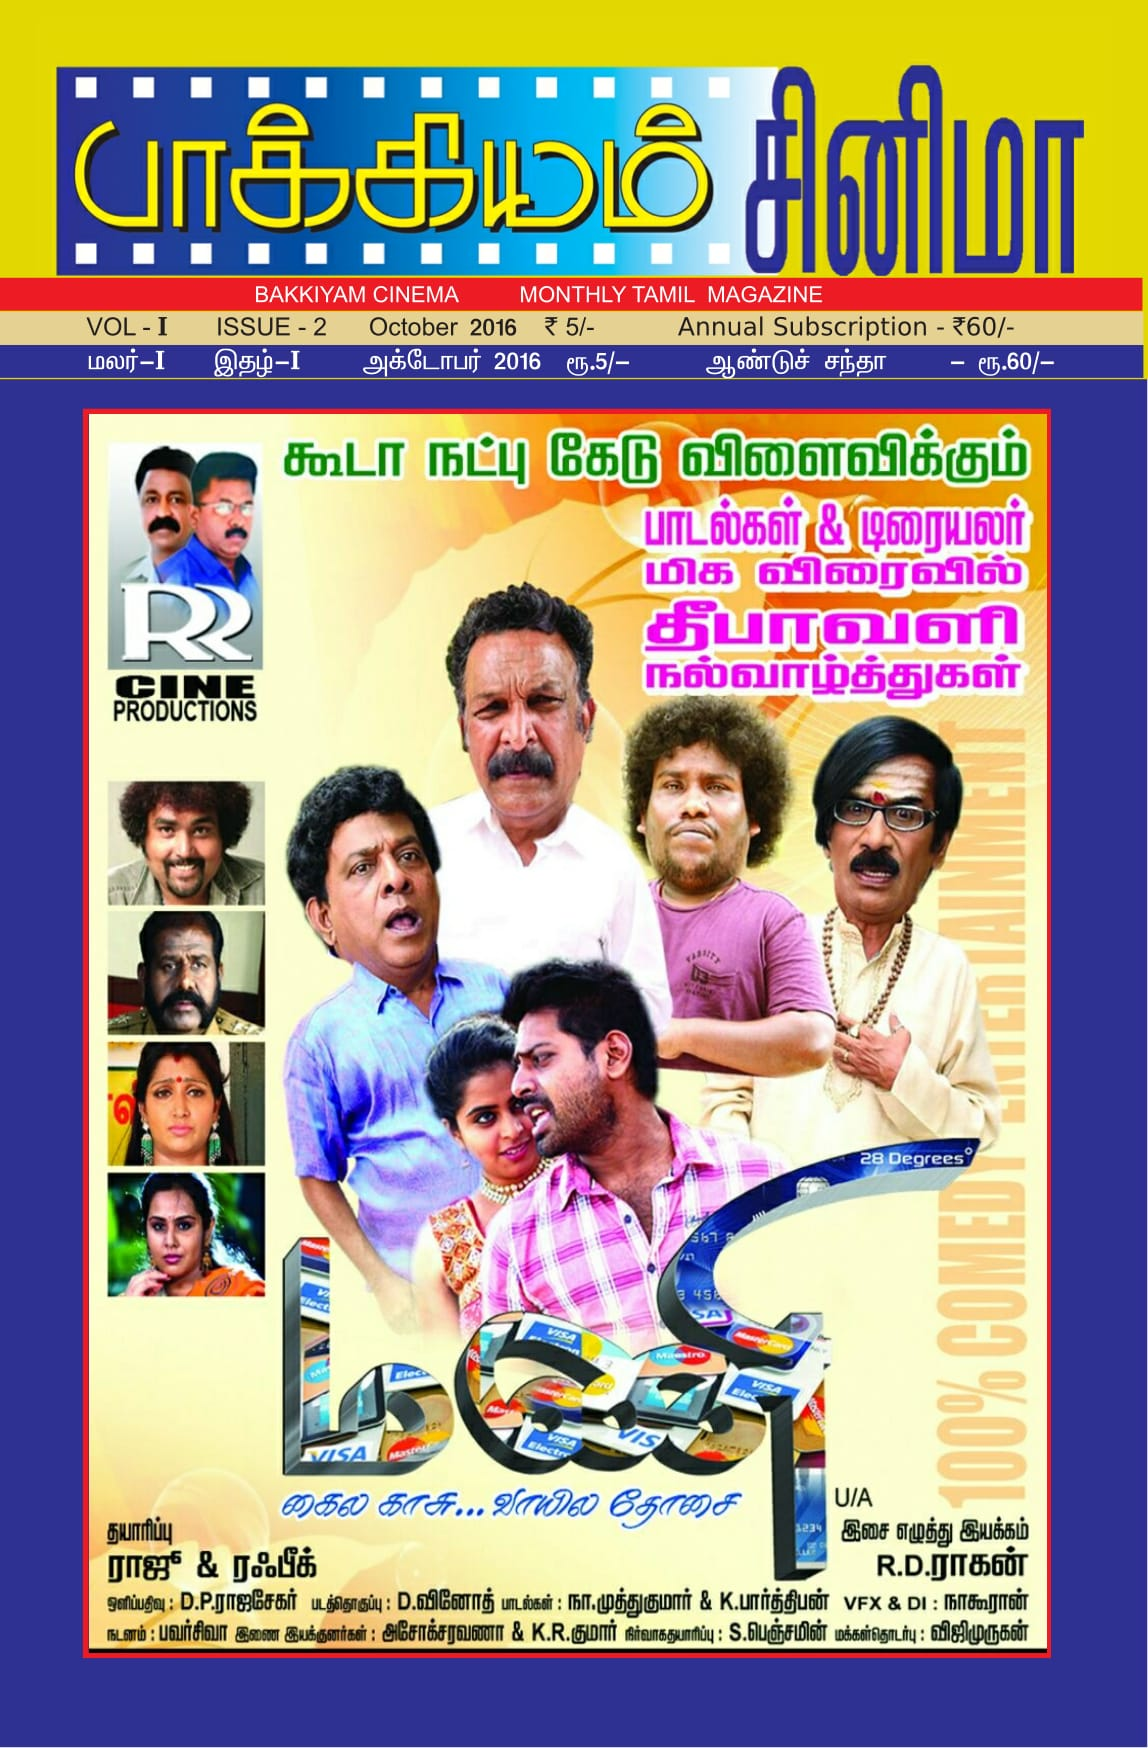 Bakkiyam Cinema – Oct 2016 Book Pages